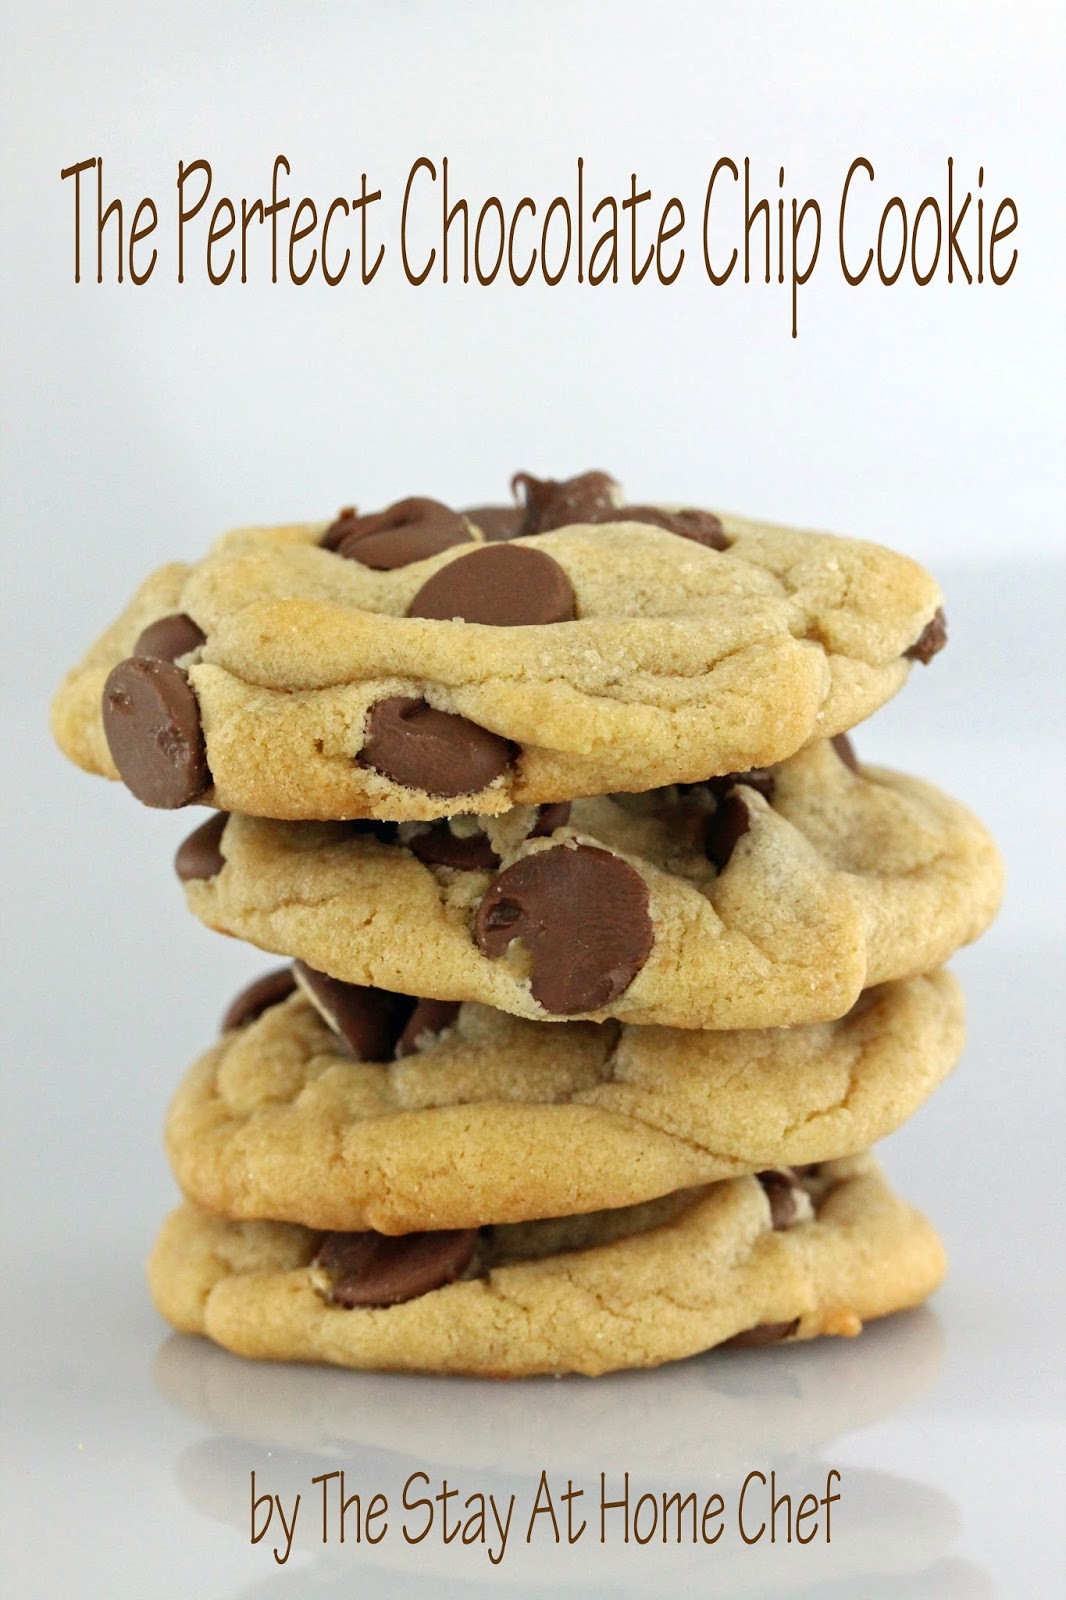 The Stay At Home Chef: Rachel's Perfect Chocolate Chip Cookies